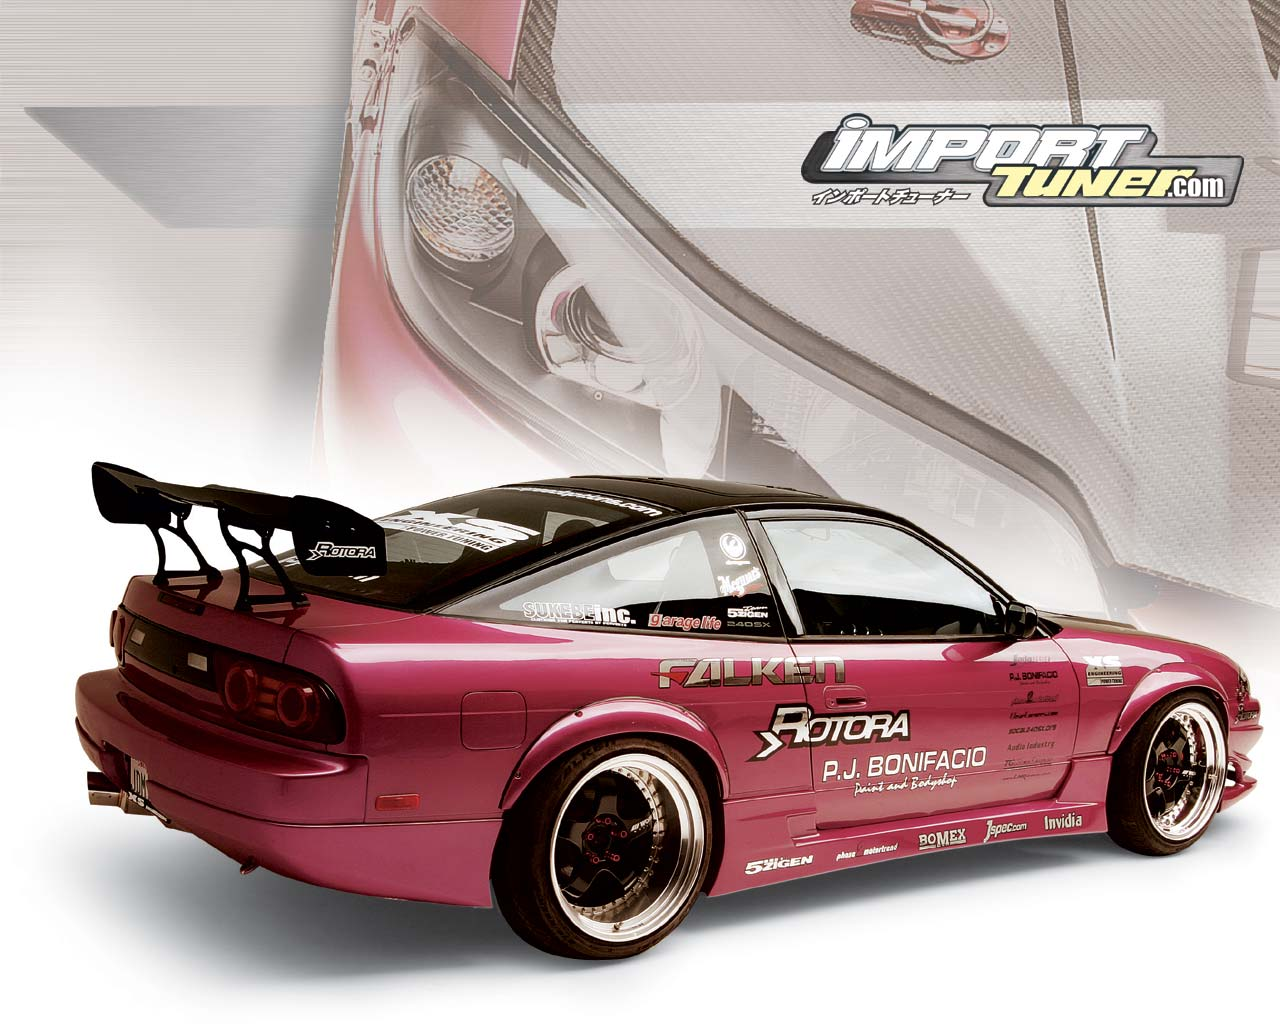 Nissan 240SX Tuned Car Wallpapers